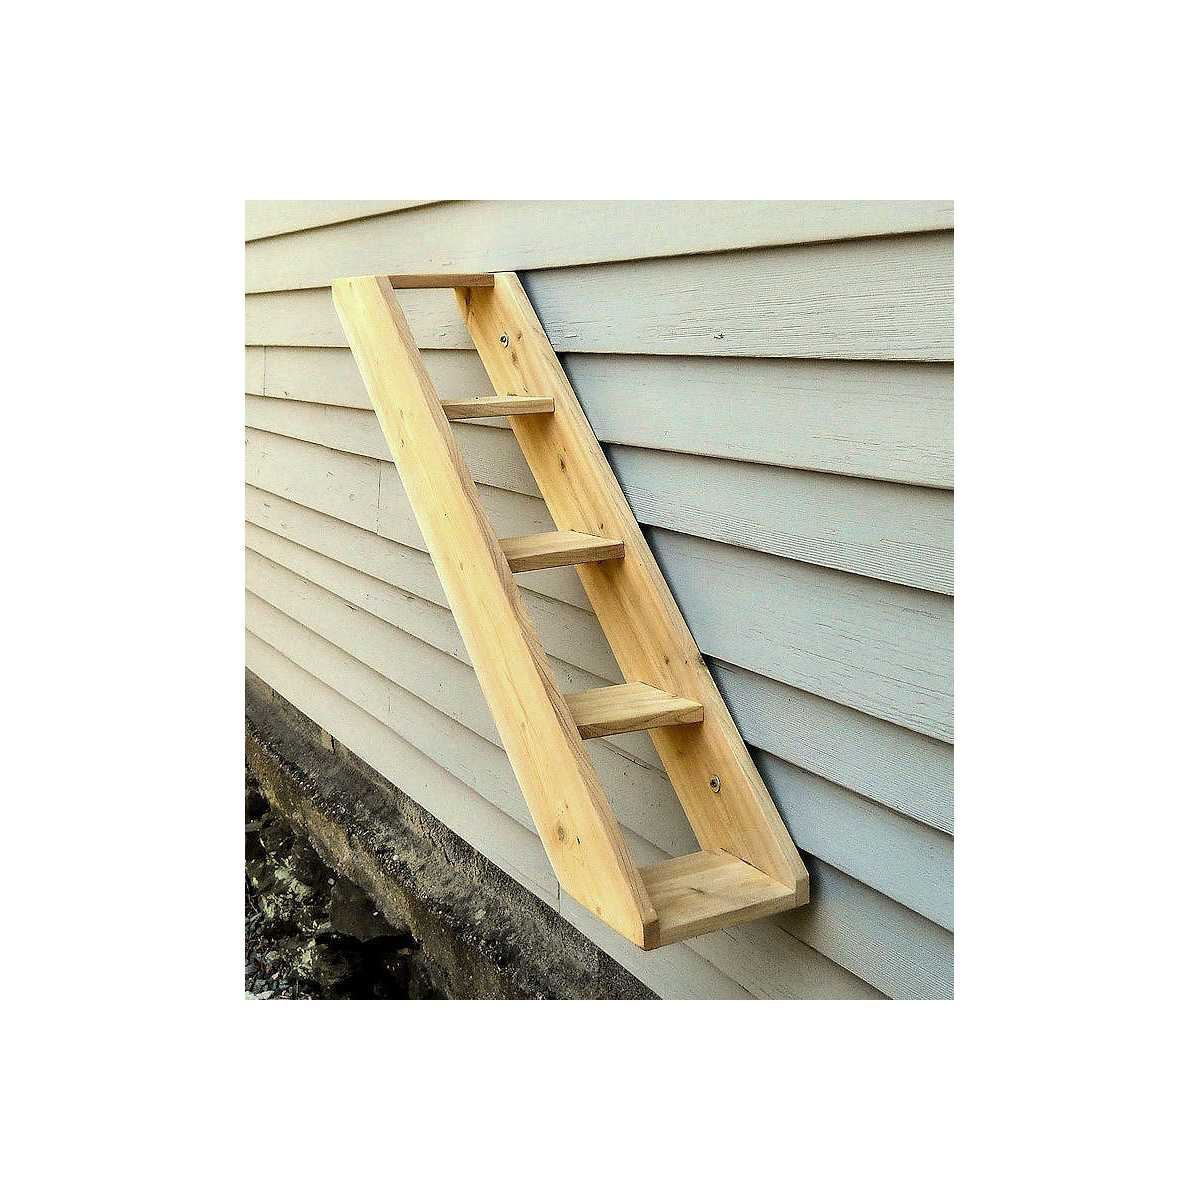 SALE Outdoor Cedar Cat Wall System: Stair / Ladder